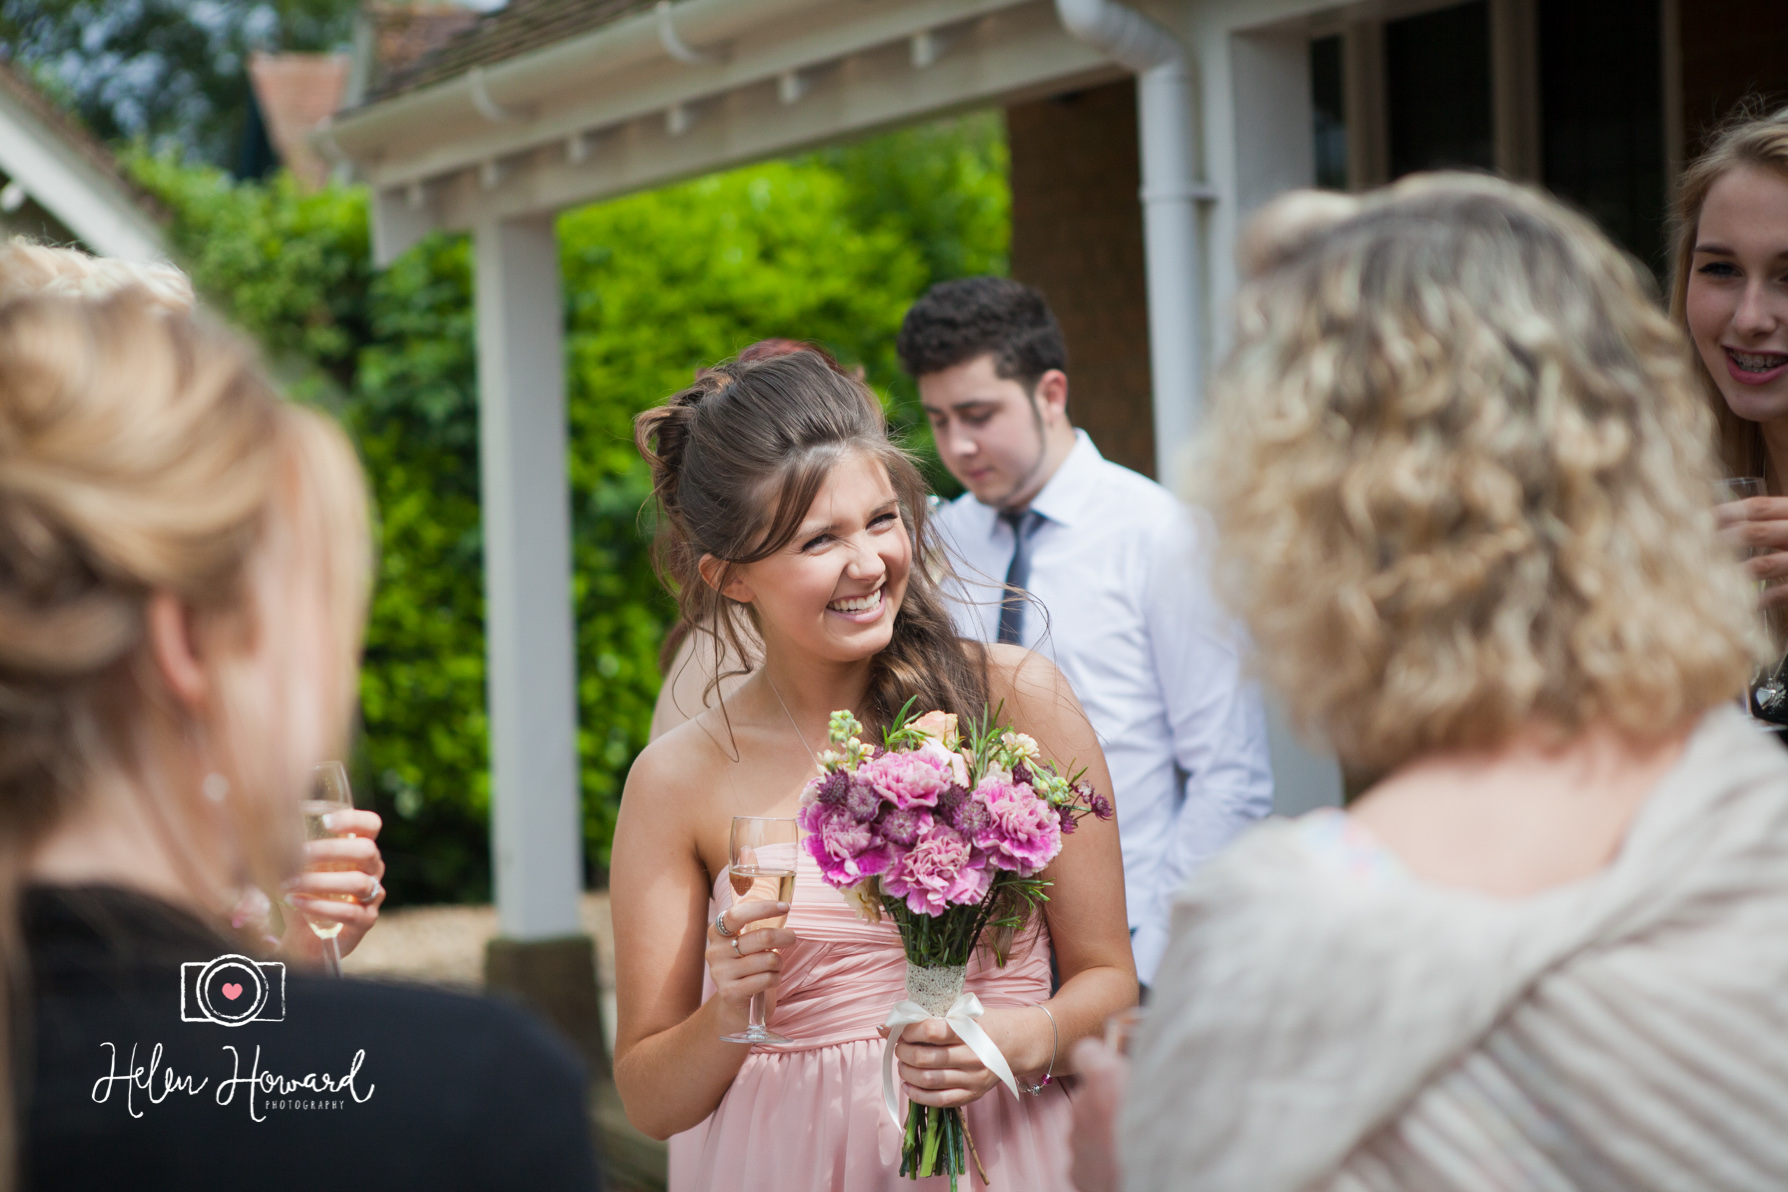 A bridesmaid smiling during drinks reception at Hastoe Hall in Tring